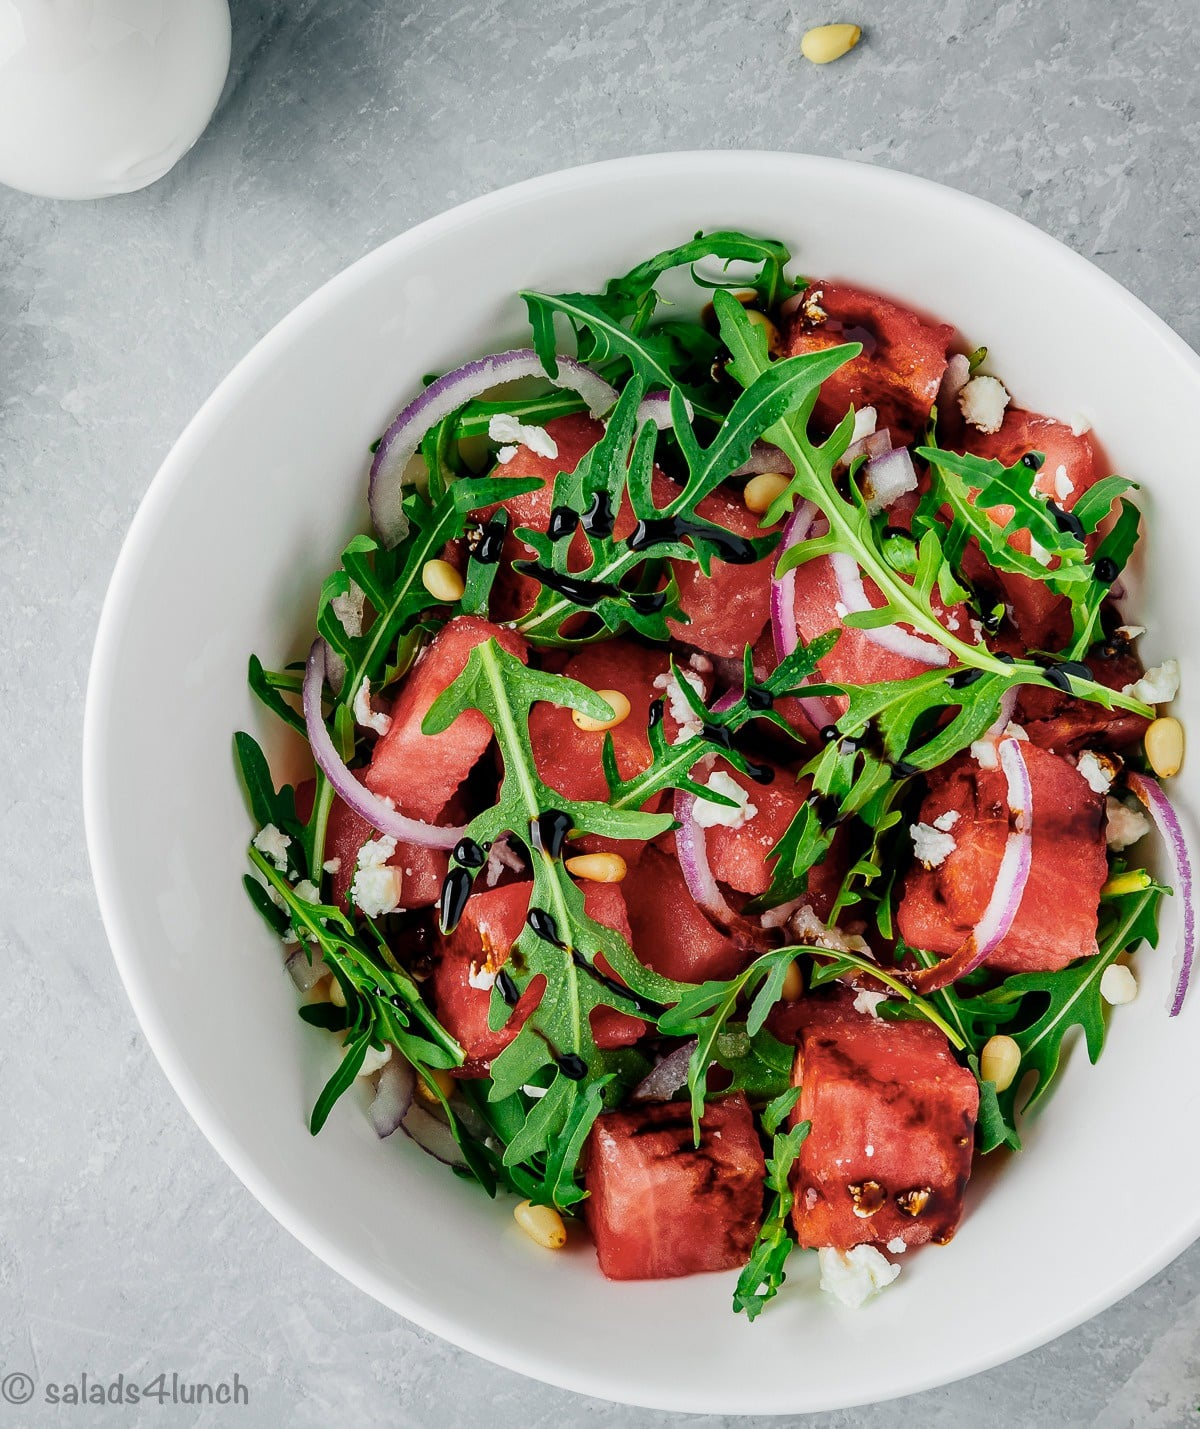 Close up photo of watermelon arugula salad with slivered red onions, feta and pine nuts drizzled with sweet balsamic reduction in a white bowl